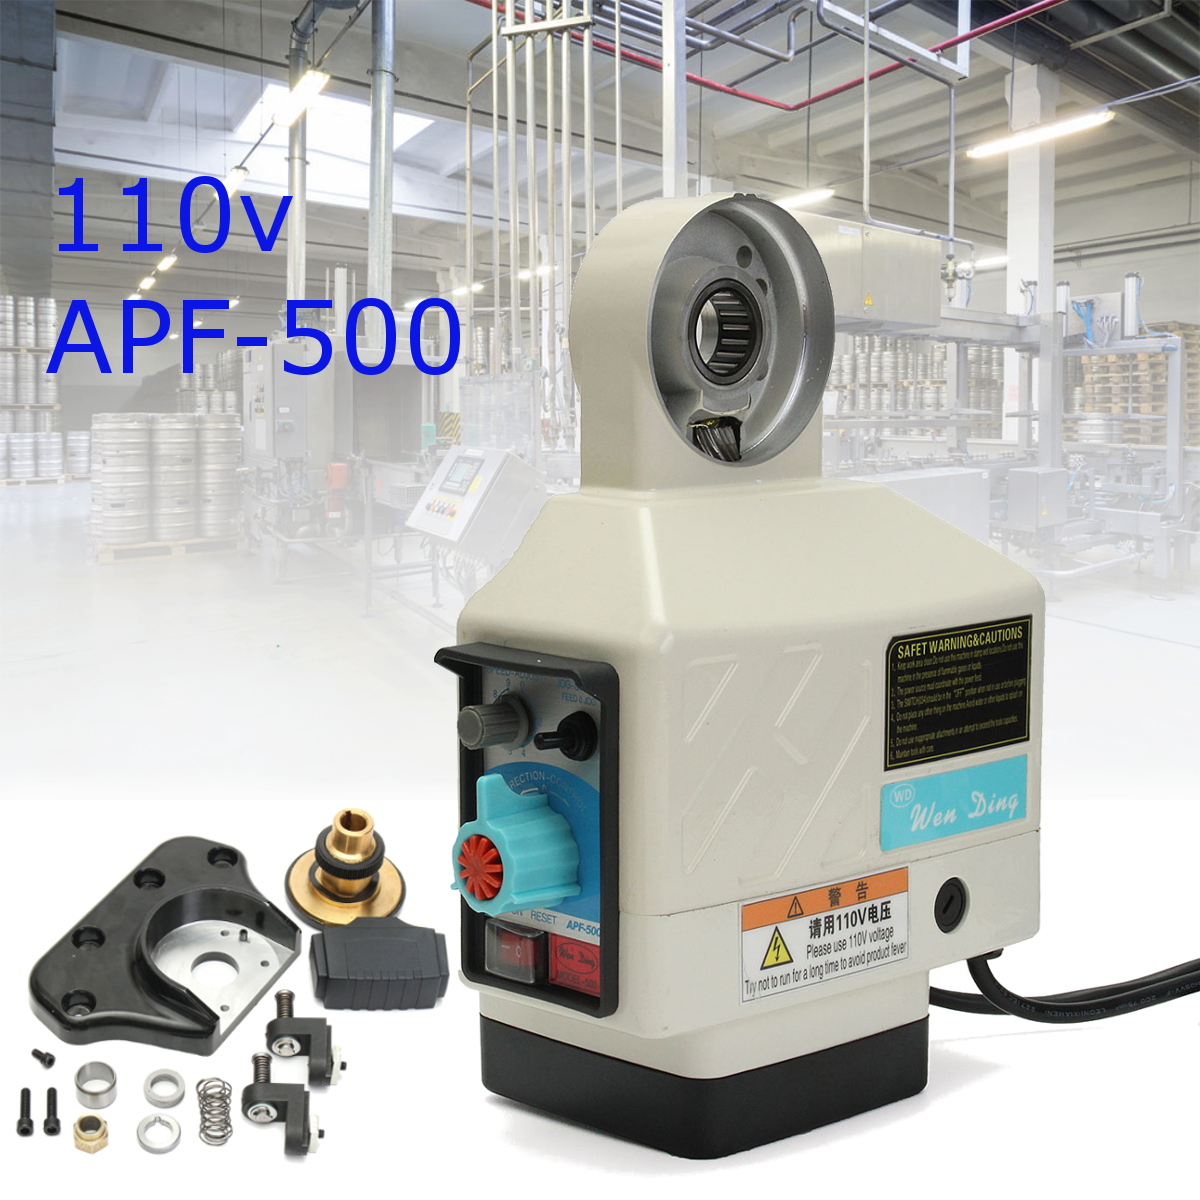 AC110V APF-500 Power Feed X Axis Feeder Power Table Feed for Bridgeport Type Milling Machines